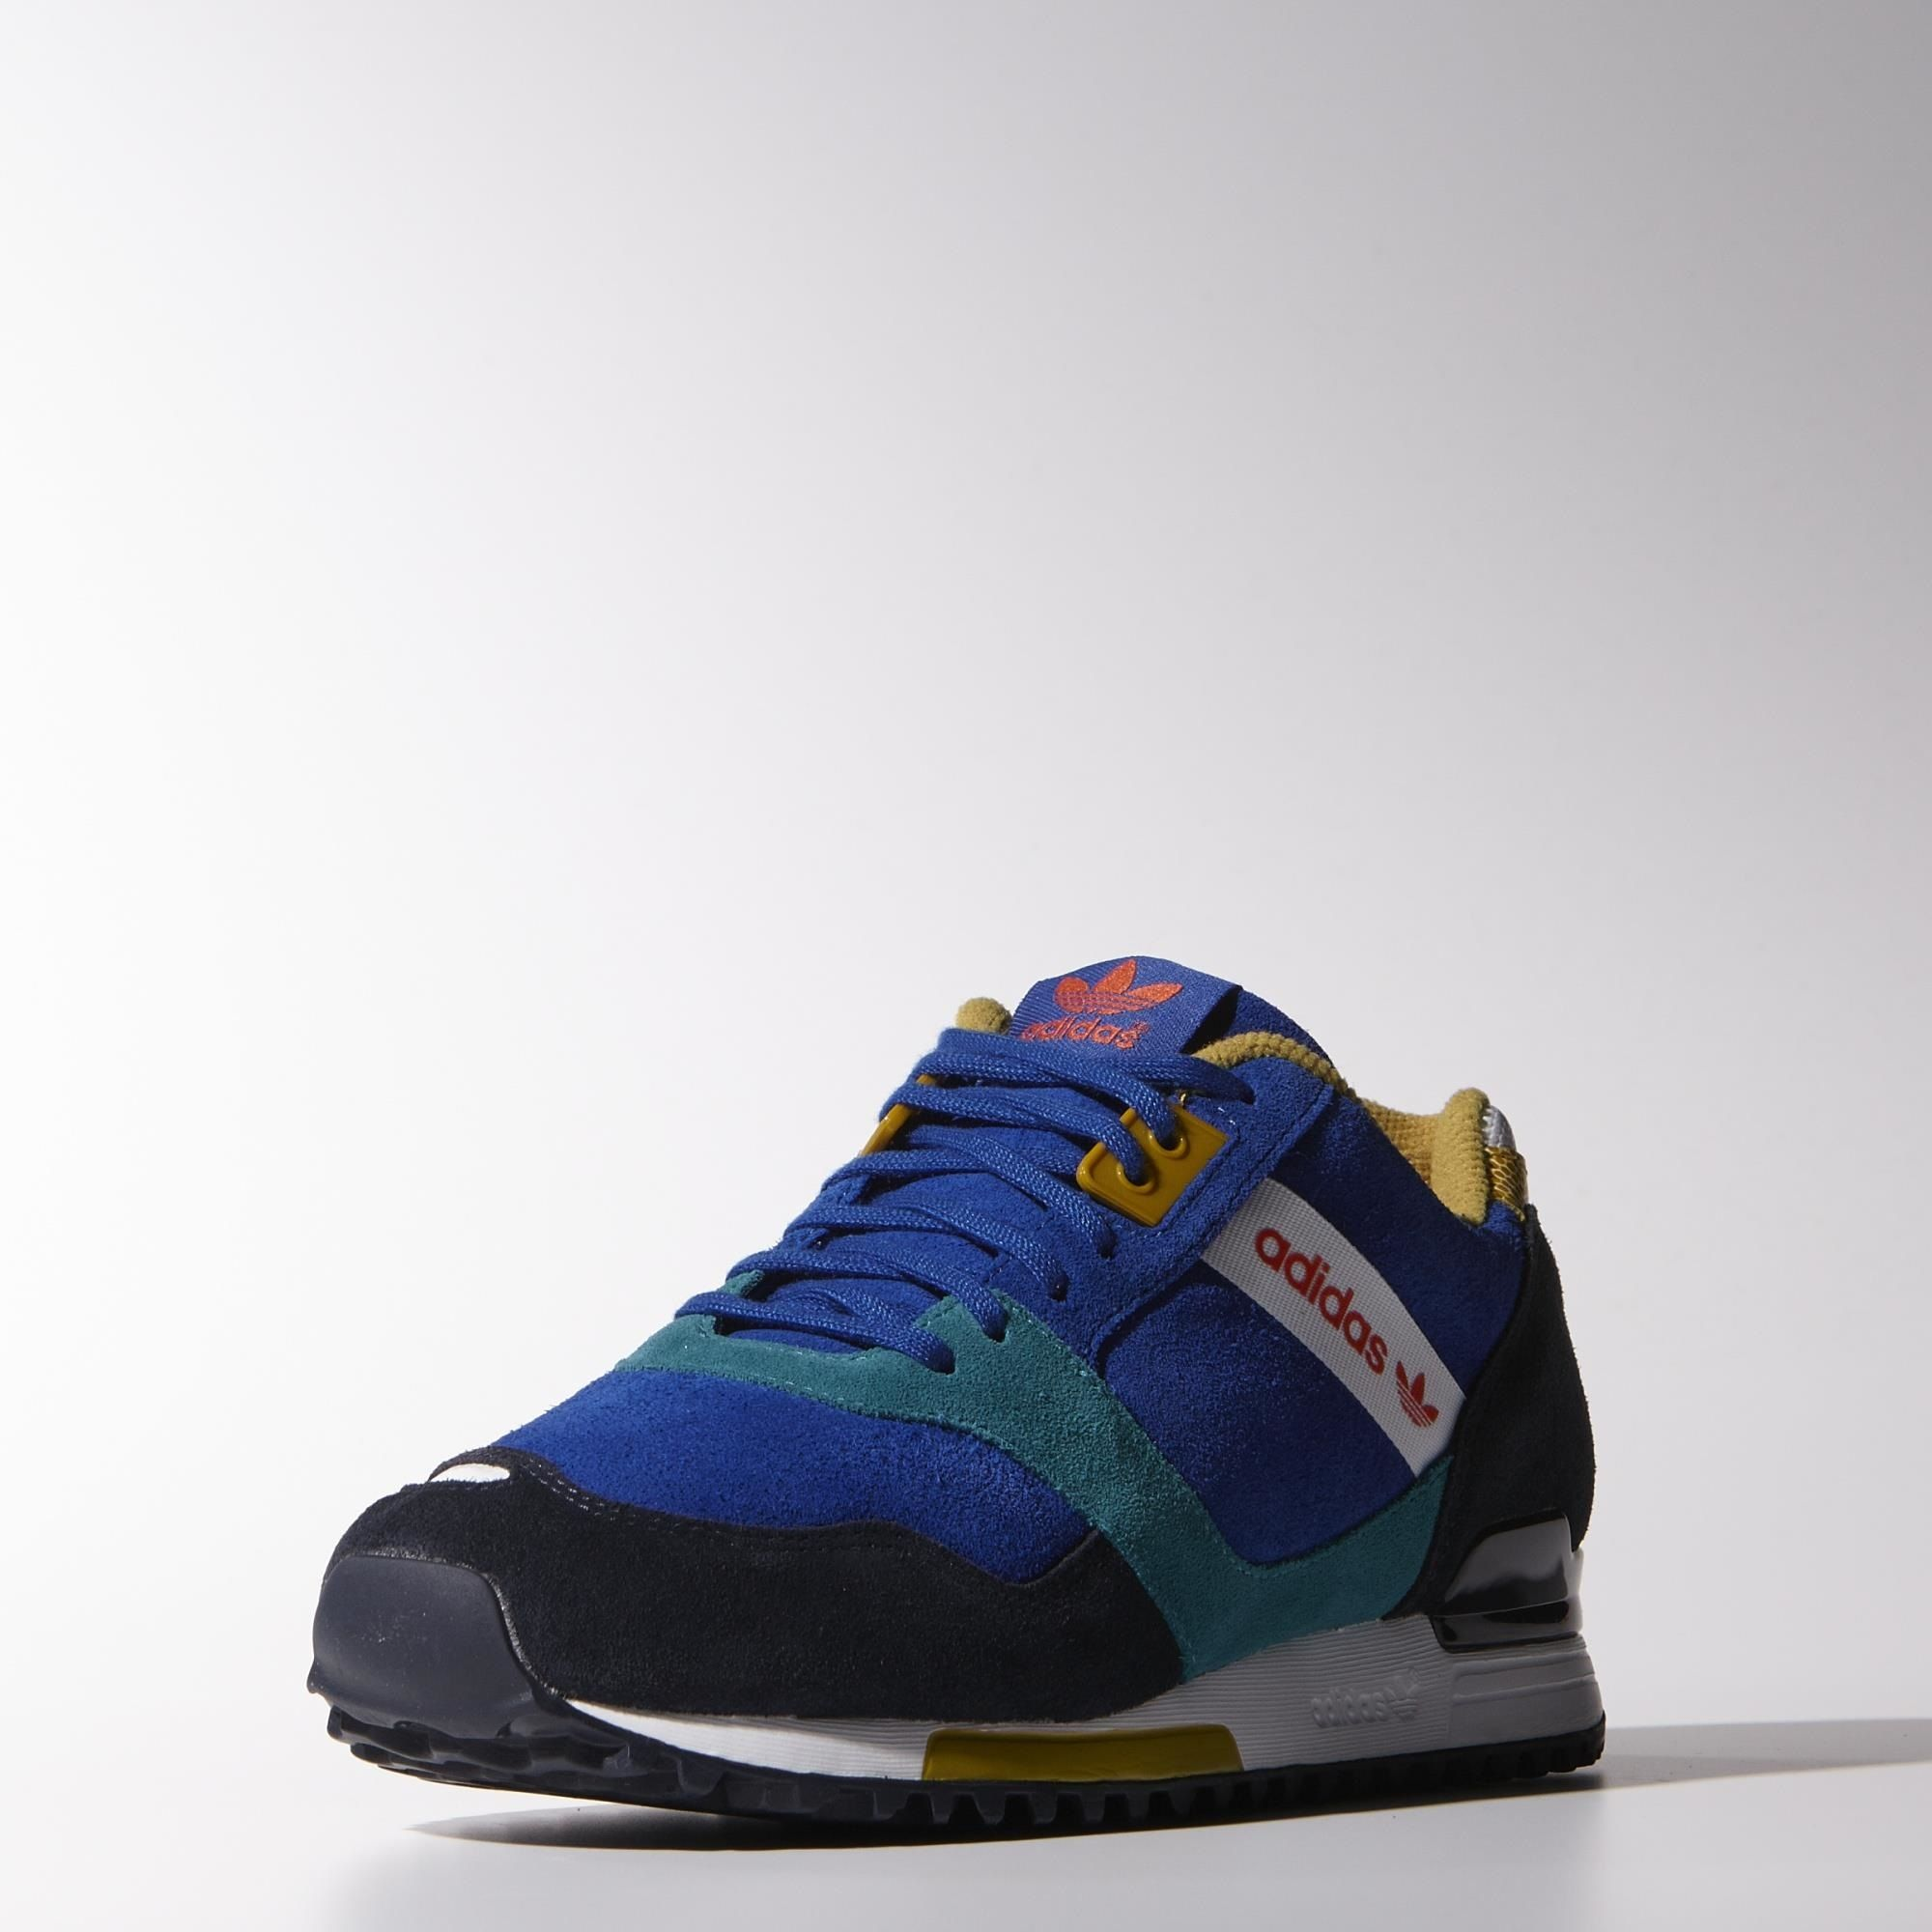 adidas ZX 700 Contemp Shoes | adidas Deutschland